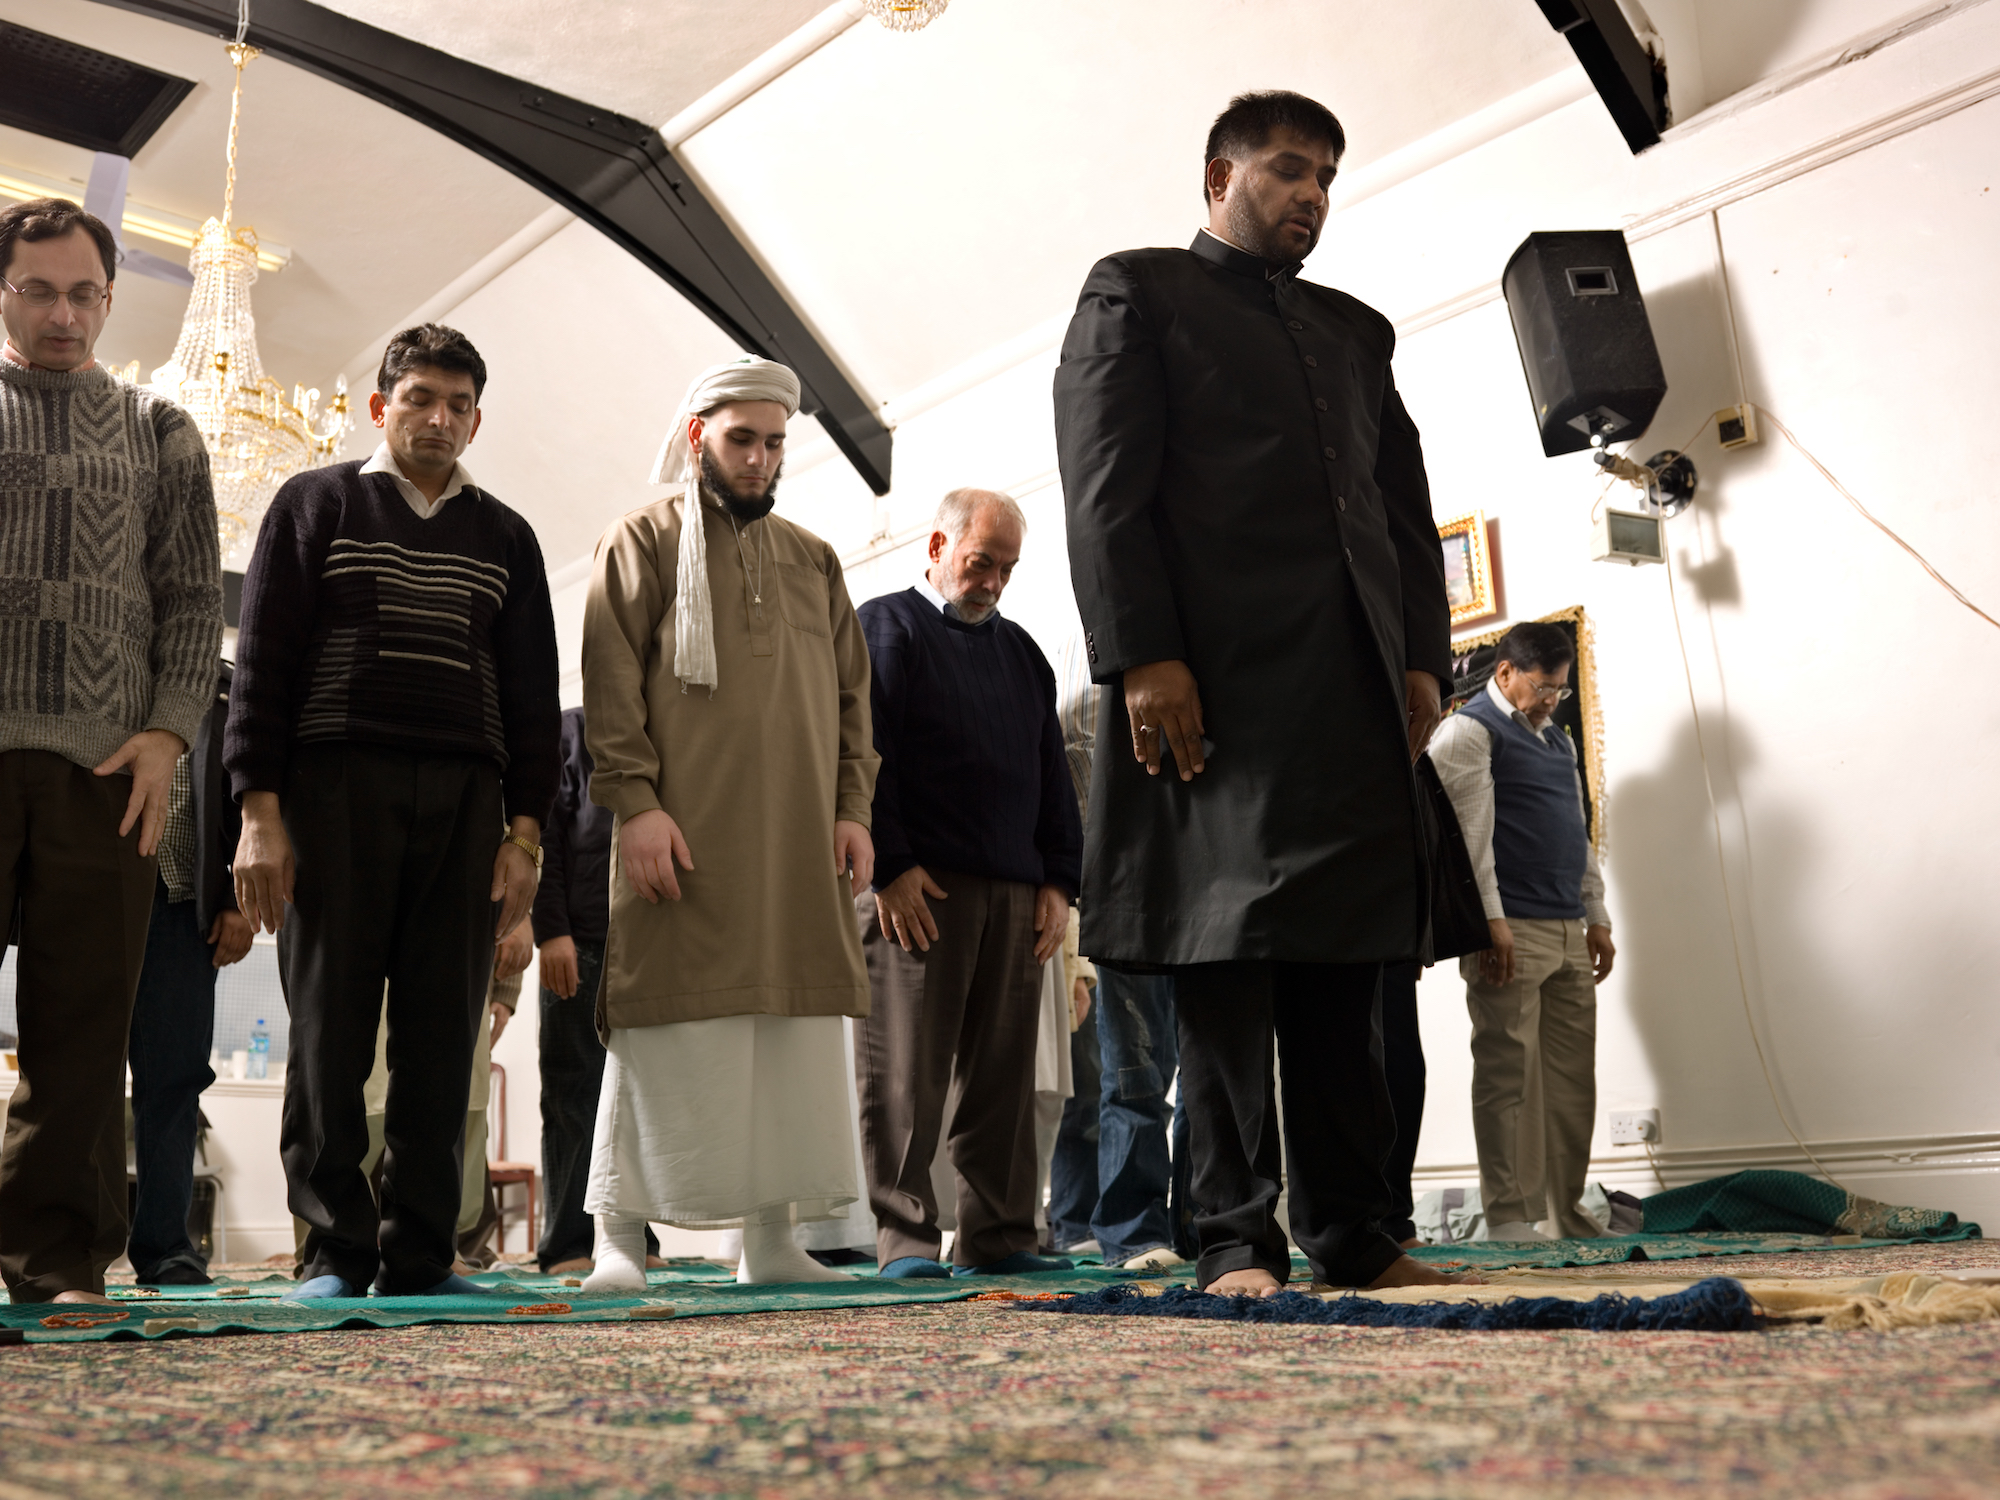 VCH Bristol. Daral-Imaan Mosque, Apsley Road, Eastville, Bristol. Interior, general view of mosque, during prayers.